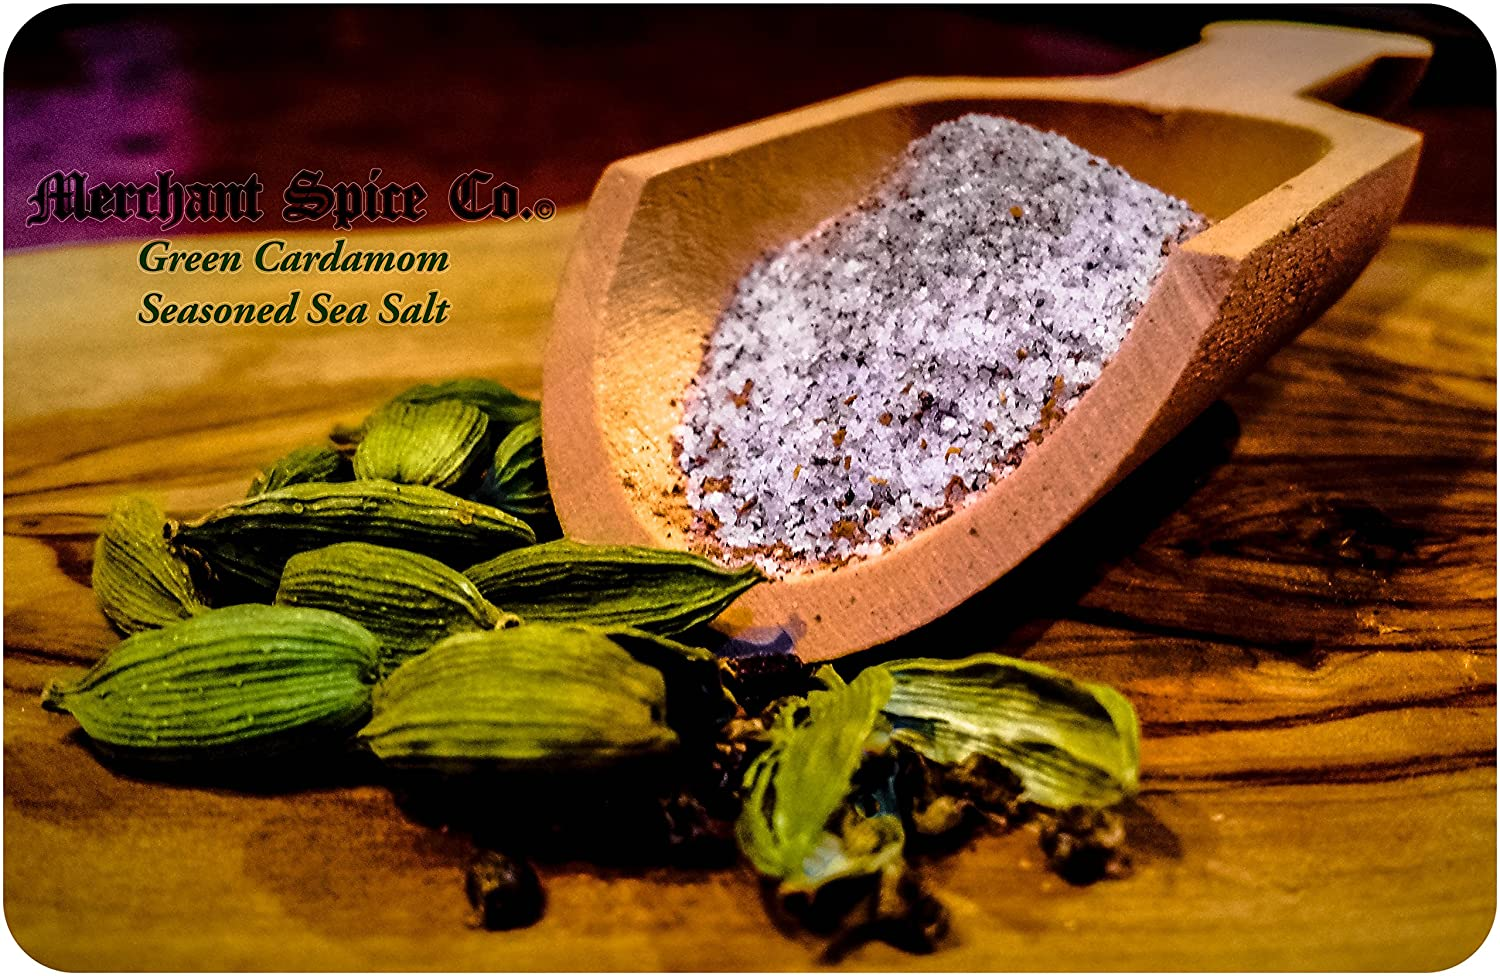 Green Cardamom Salt from the Seasoned Sea Salts Collection by Me